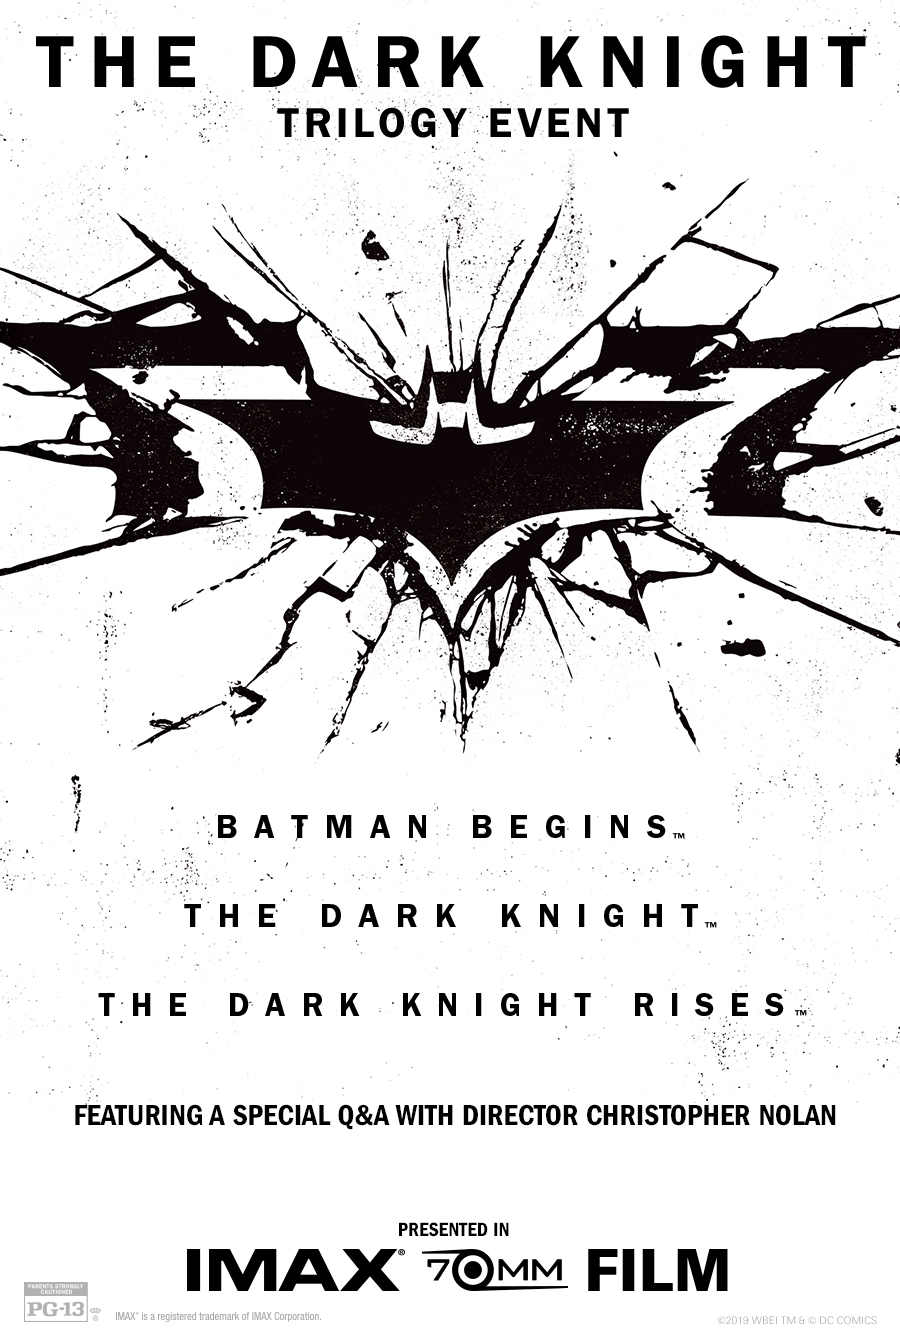 The Dark Knight Trilogy in IMAX 70mm